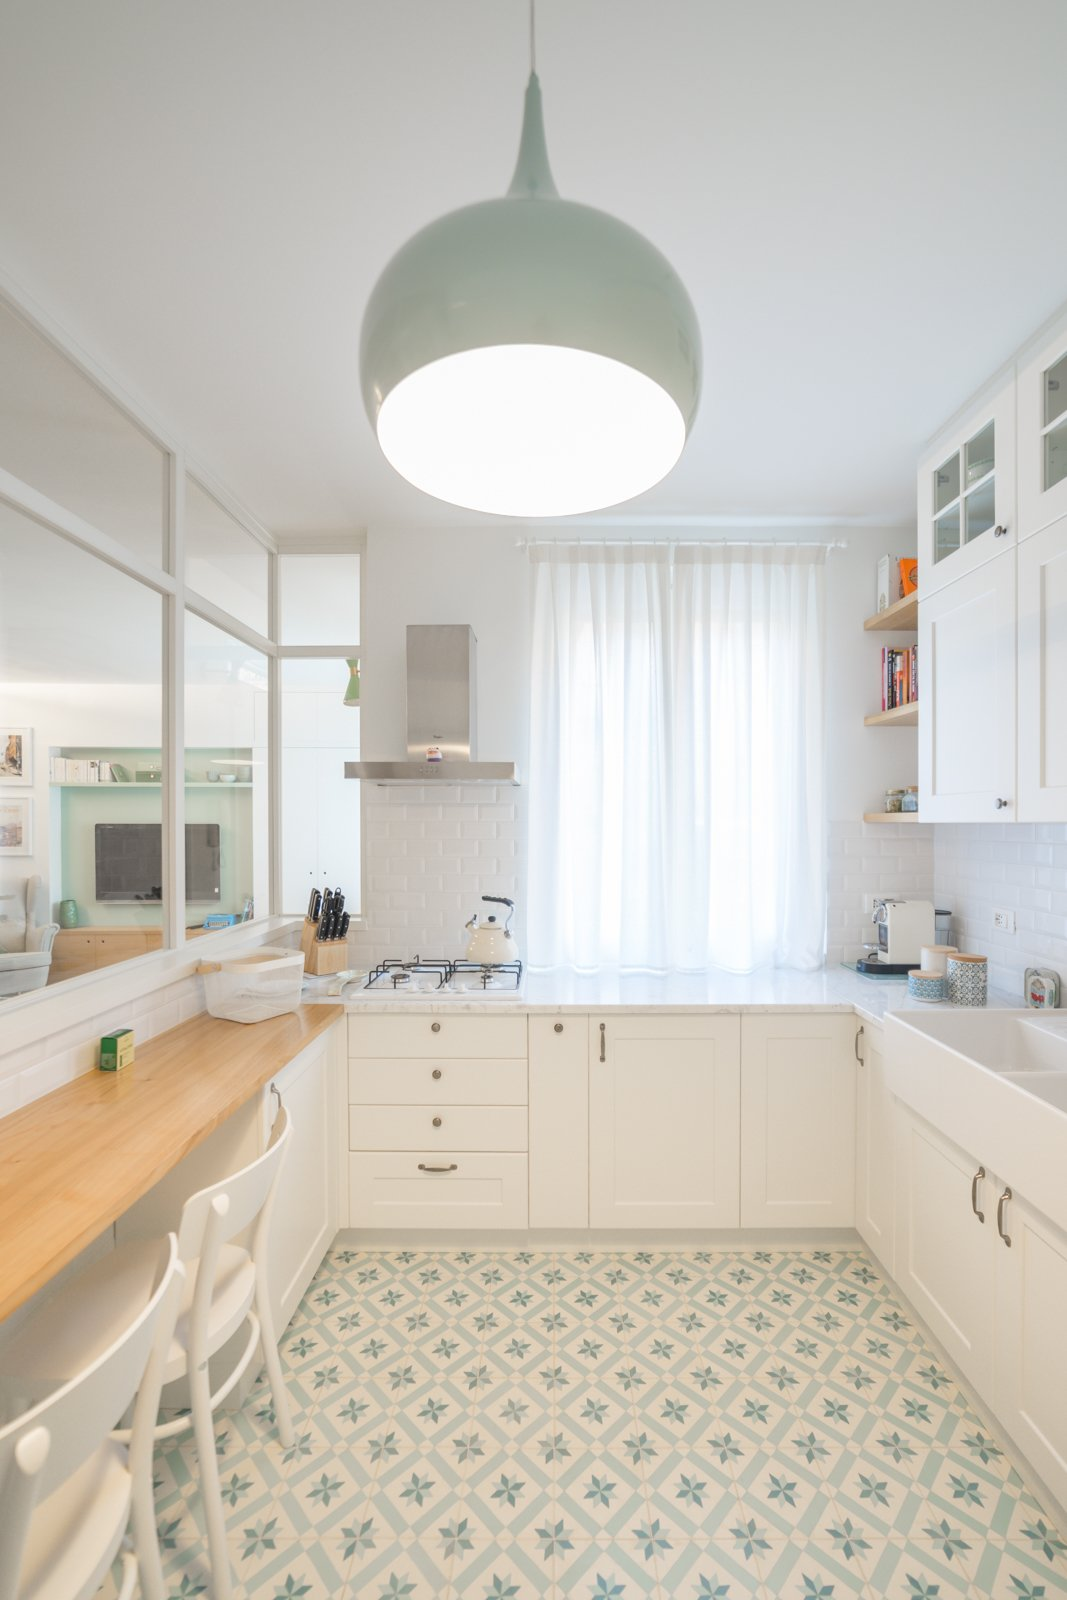 Kitchen, Marble, Pendant, Cement Tile, Range Hood, Vessel, and Cooktops Within the kitchen is a discreet, built-in pantry that disappears when not in use.  Best Kitchen Marble Cement Tile Photos from A Revamped Modern Home Is Sprinkled With Old-World Charm